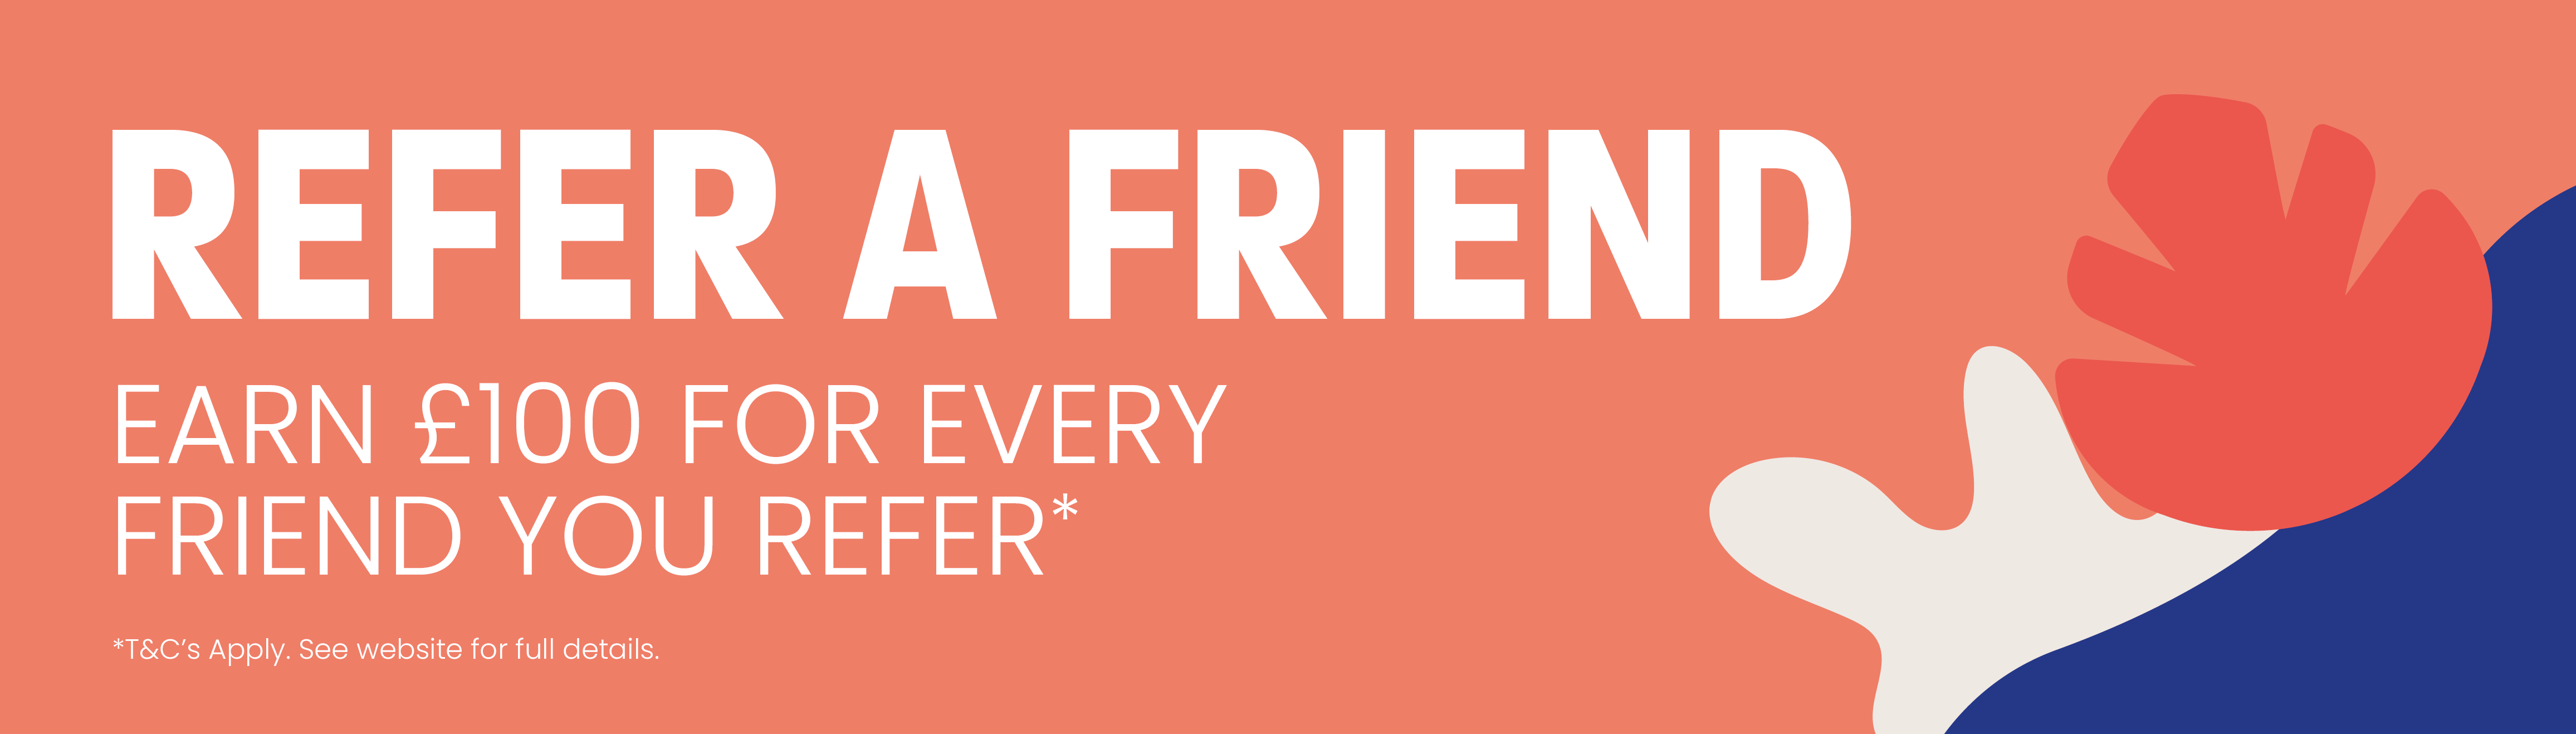 Refer a friend and save money